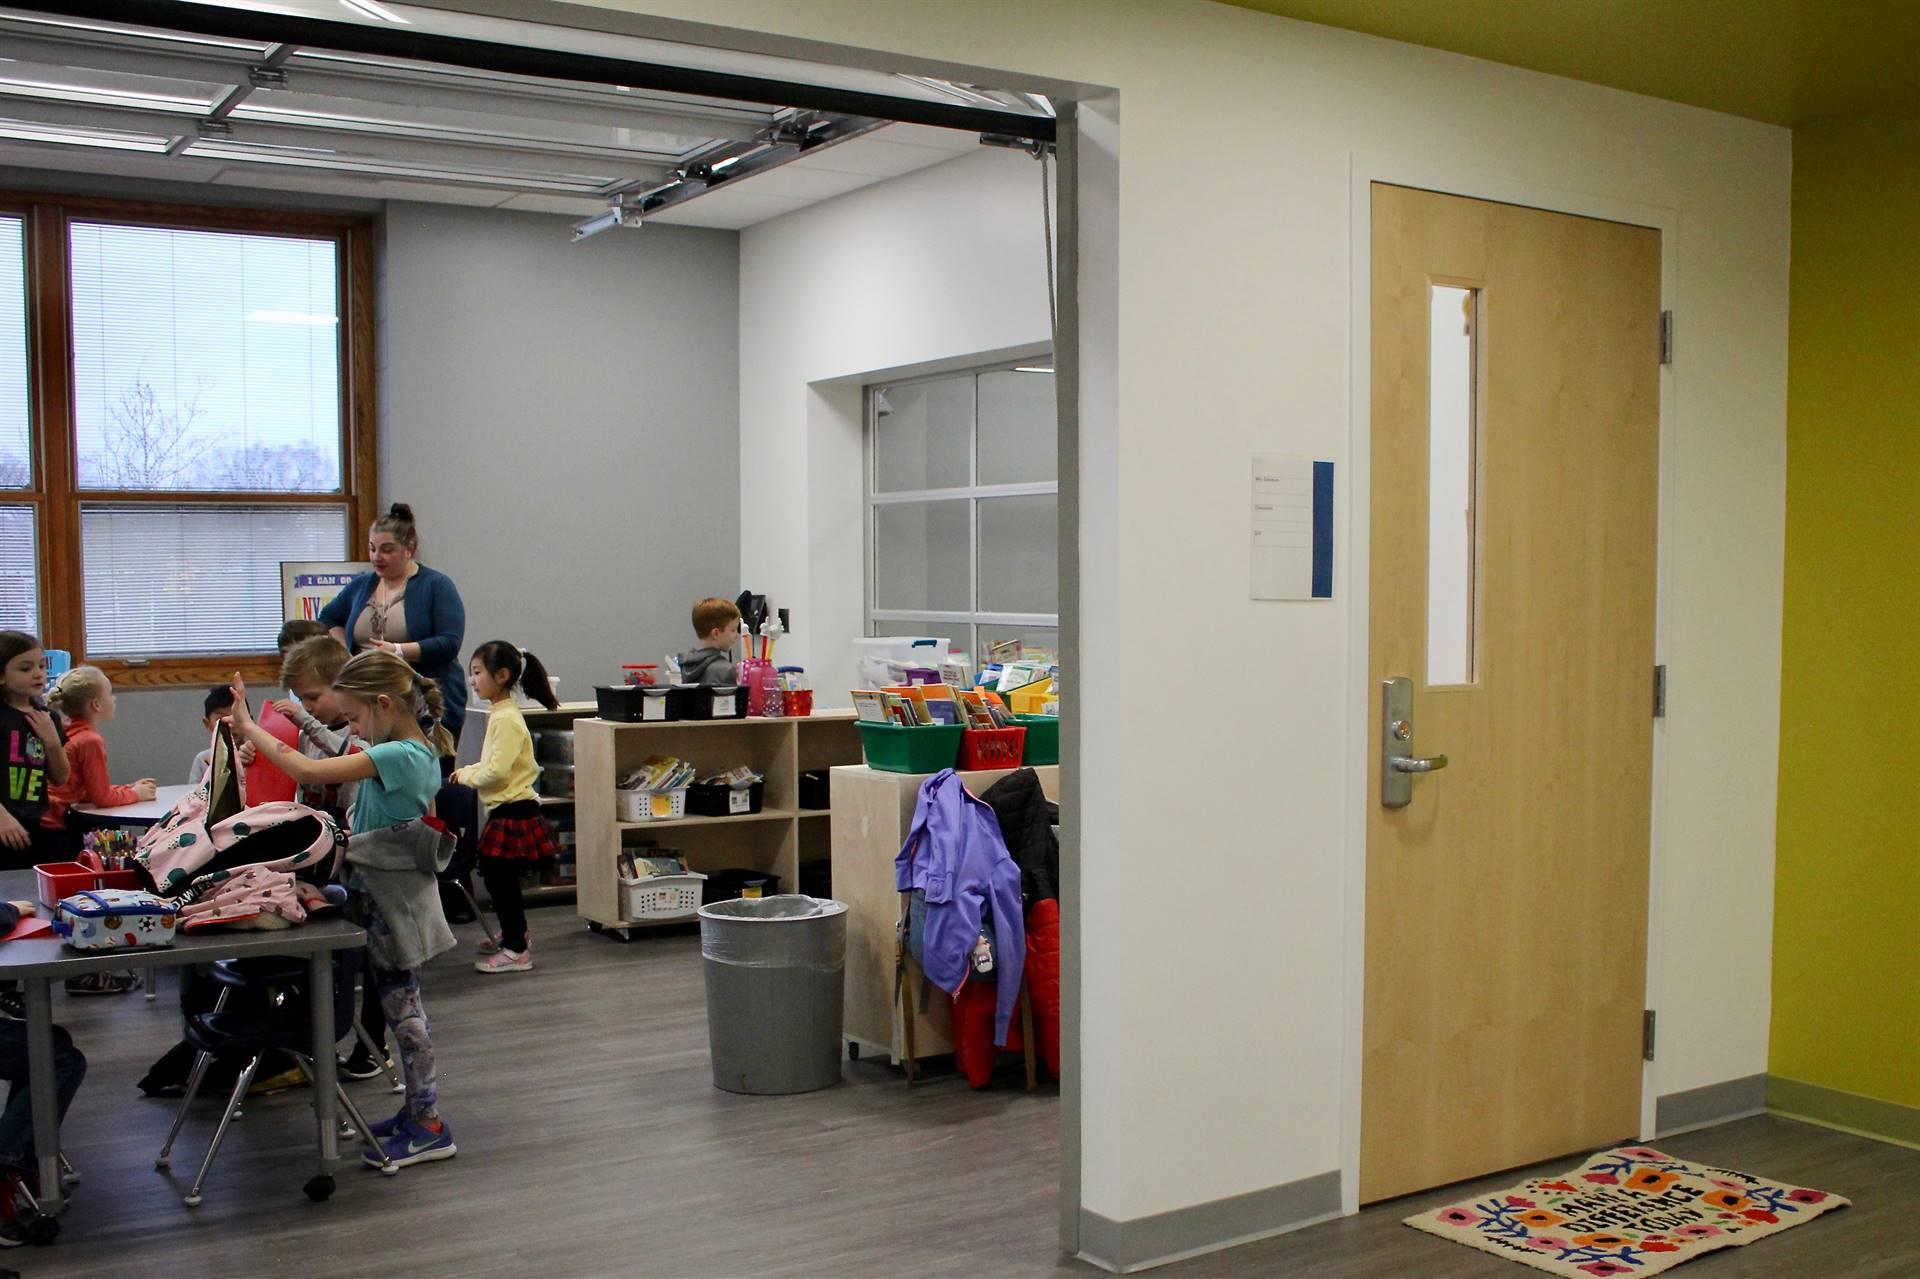 A renovated second floor classroom at Tremont Elementary School